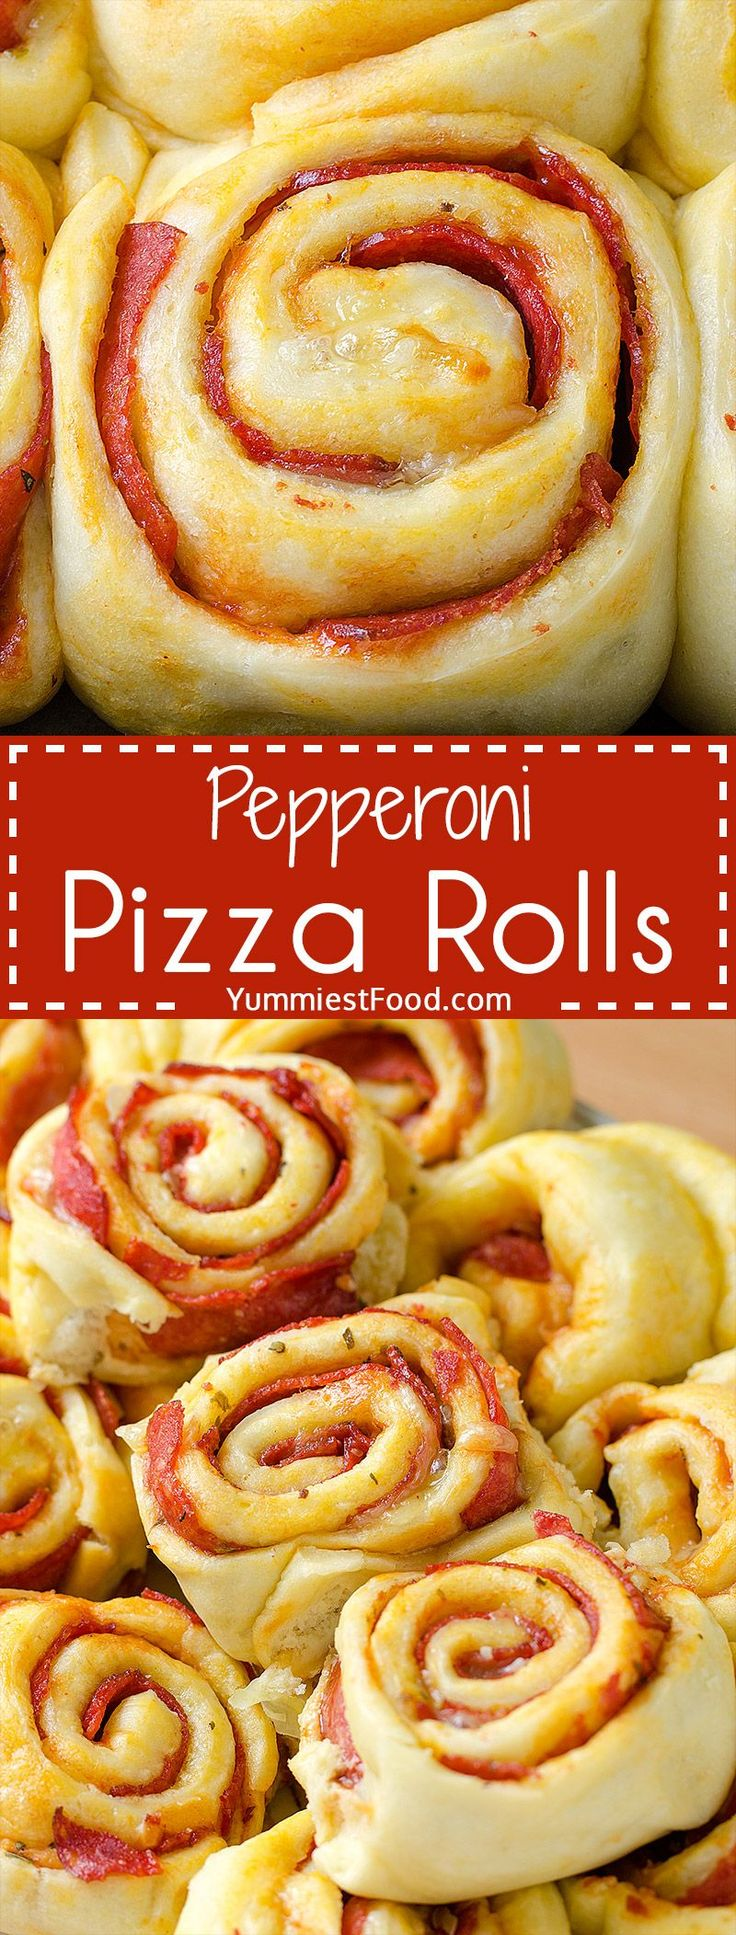 Pepperoni Pizza Rolls – so nice and easy way to enjoy pizza. These Pepperoni Pizza Rolls are perfect for every occasion.